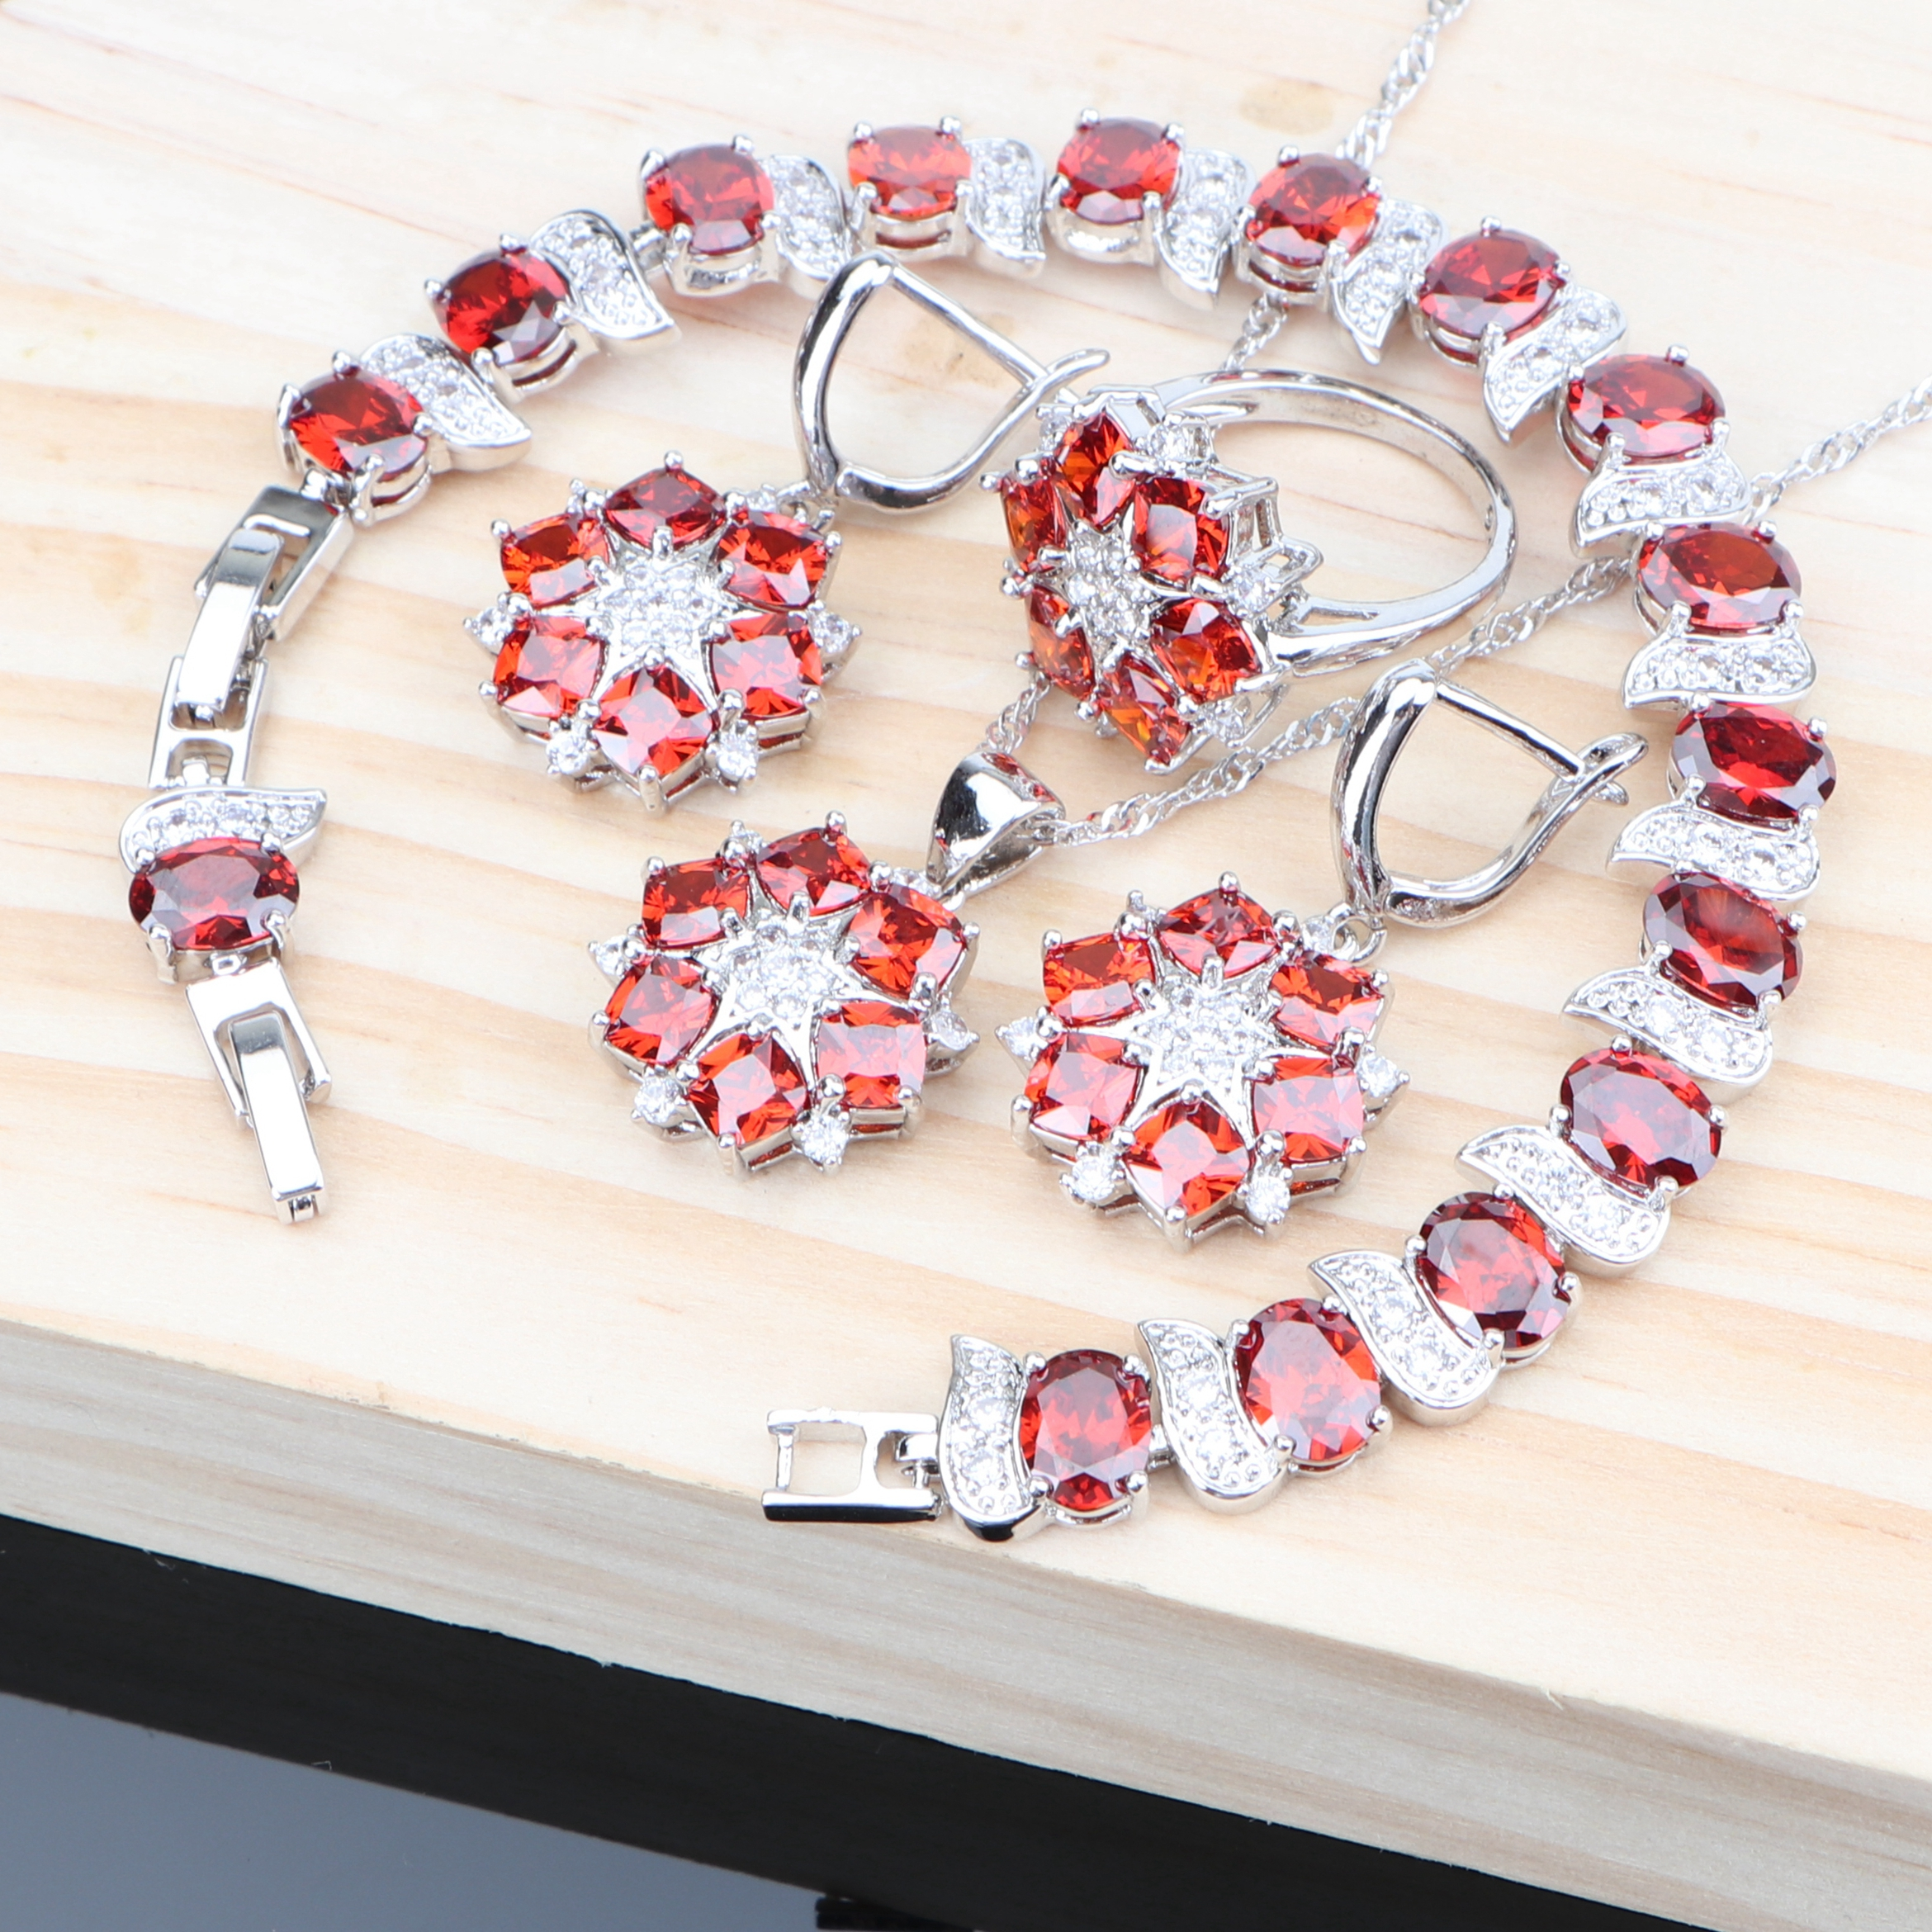 Wedding Red Zircon Silver 925 Jewelry Sets Women Bridal Costume Jewelry With Earrings Bracelet Ring Wedding Necklace Pendant Set